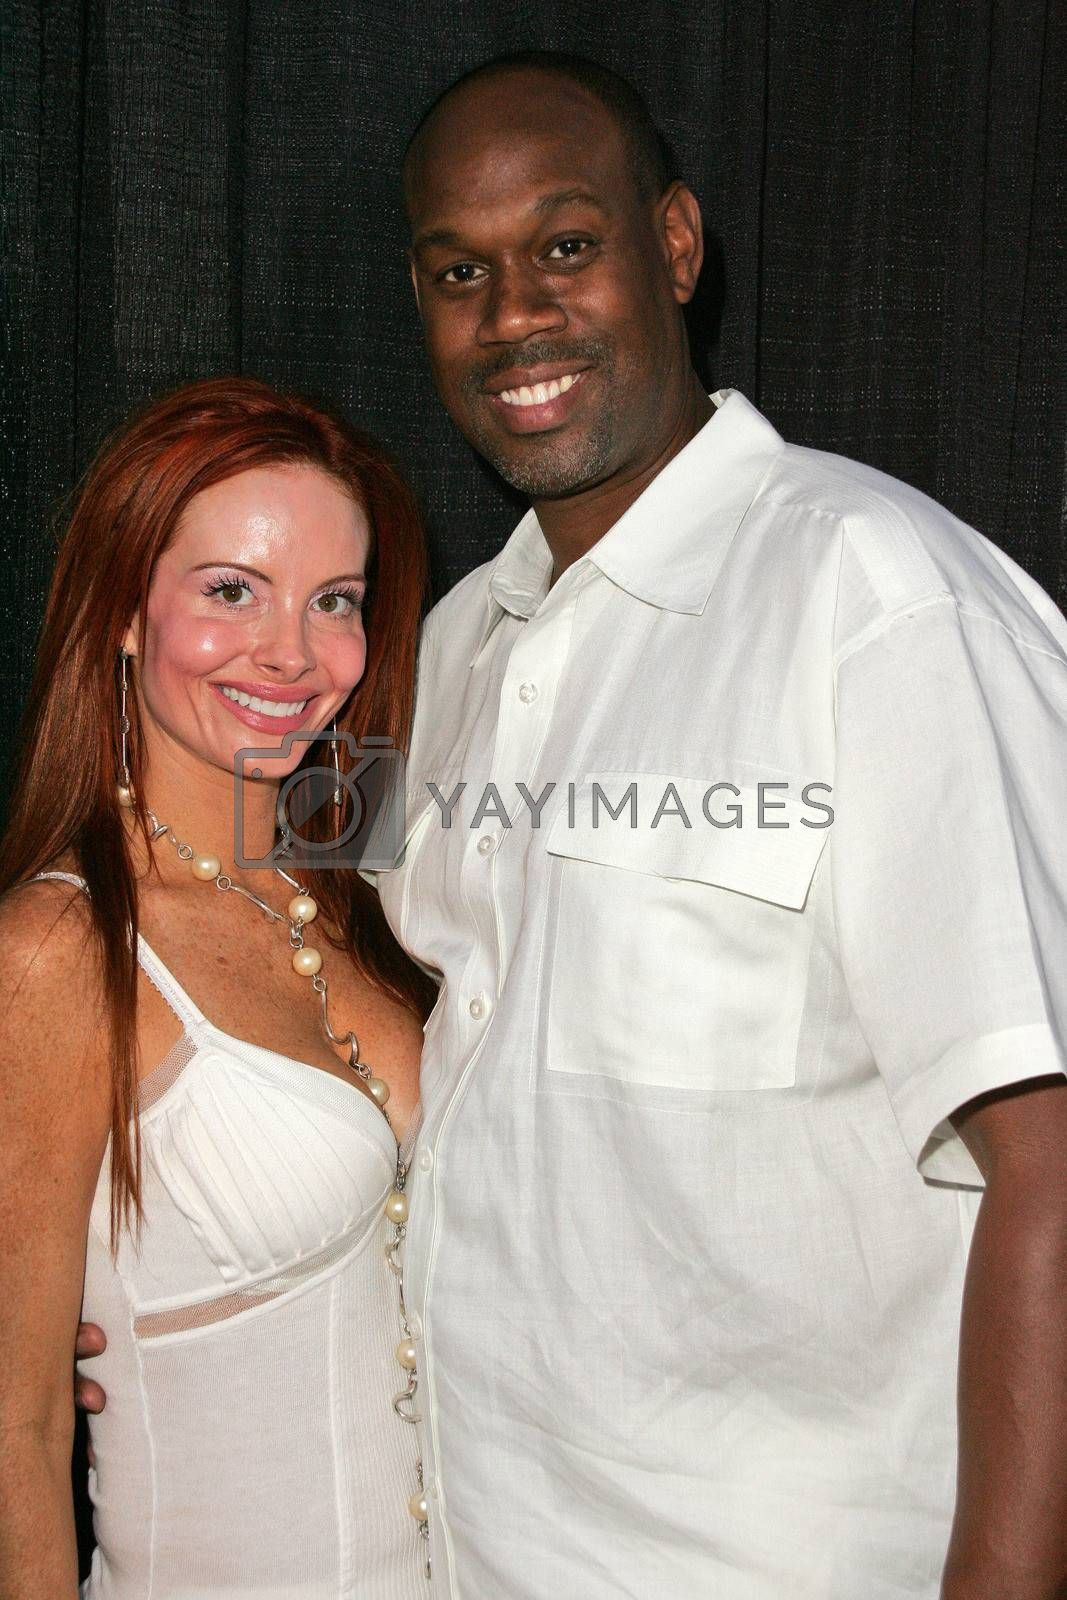 Phoebe Price and Gary L. Mack at the White Summer Pamper Party Hosted by G Report Magazine and H2O Skin Spa, Private Location, Porter Ranch, CA 07-31-05